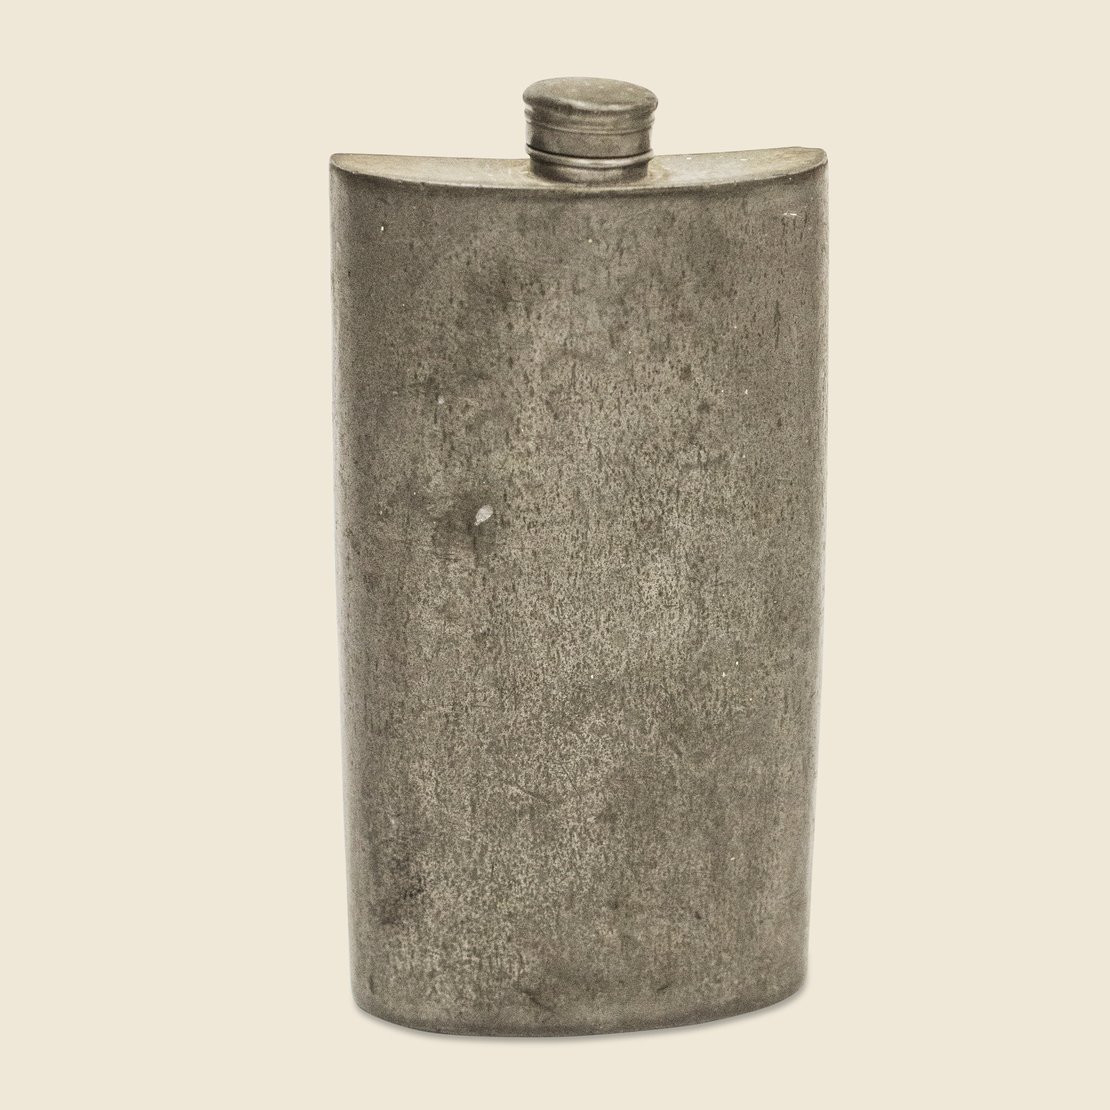 tall silver metal vases of vintage tall tin flask throughout vintage flask 02a 861c55a2 9218 4e58 ab15 4e3804124fae 1110x progressive